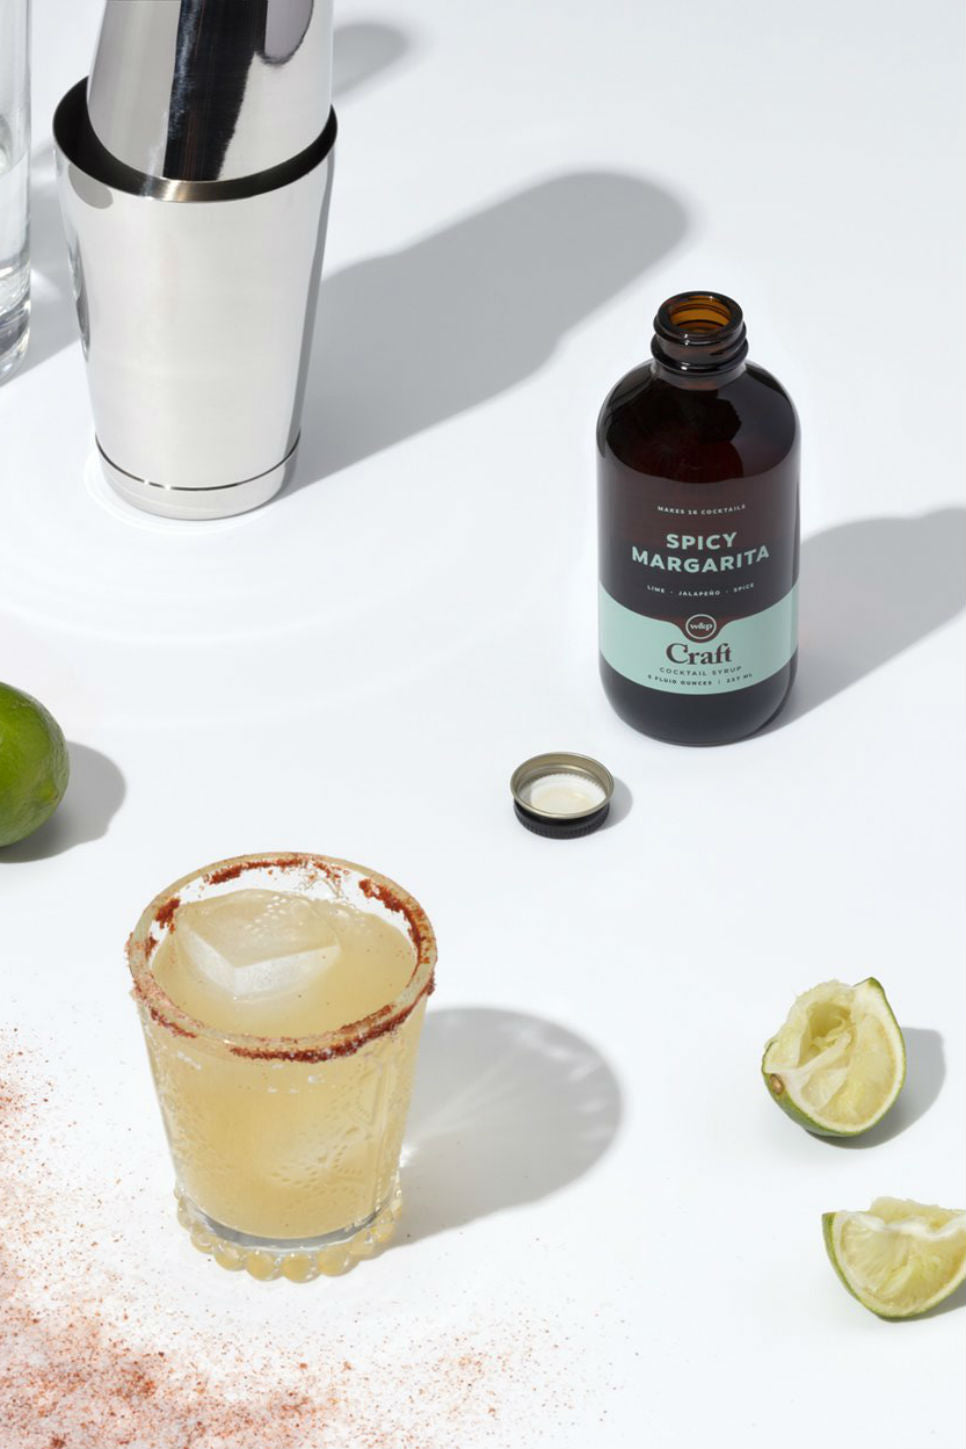 W&P - Cocktail Syrup - Spicy Margarita - Lifestyle